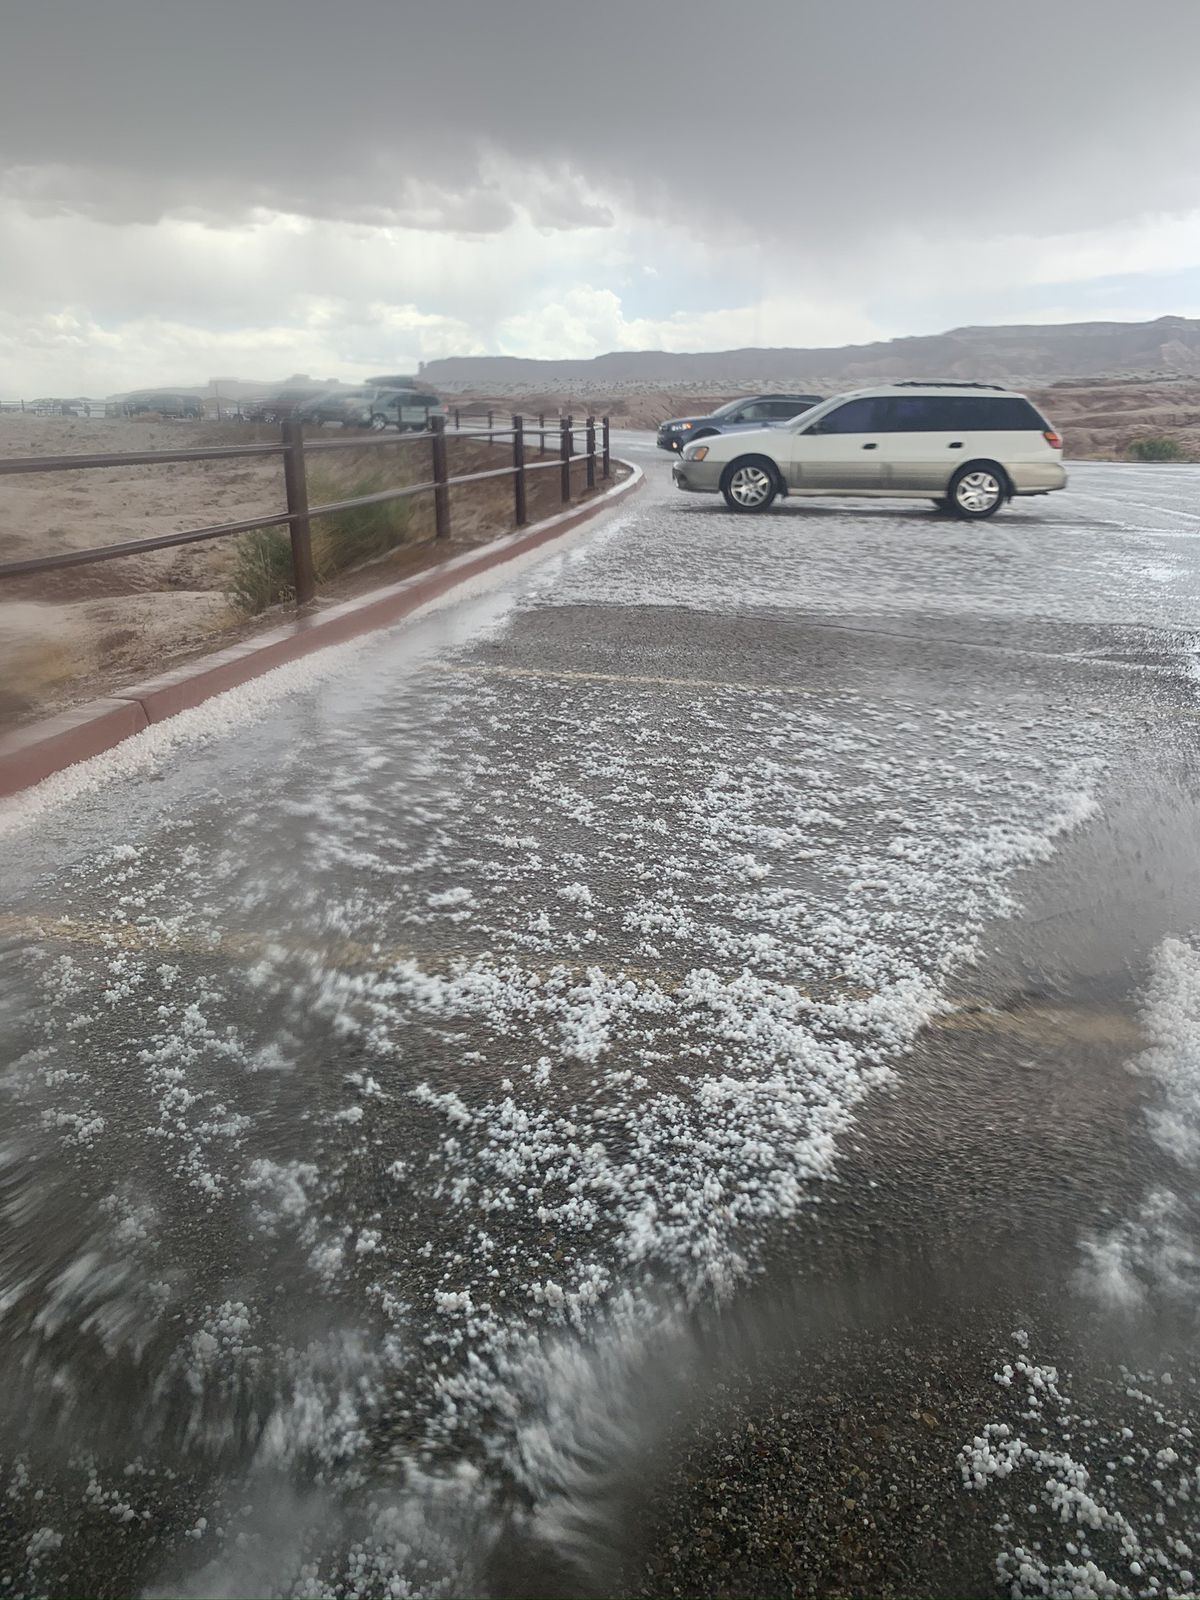 Heavy rains flooded a slot canyon near Goblin Valley State Park in an area called Little Wildhorse Canyon on Monday, May 11, 2020, that killed a 7-year-old who was hiking with her family. Her 3-year-old sister is still missing.